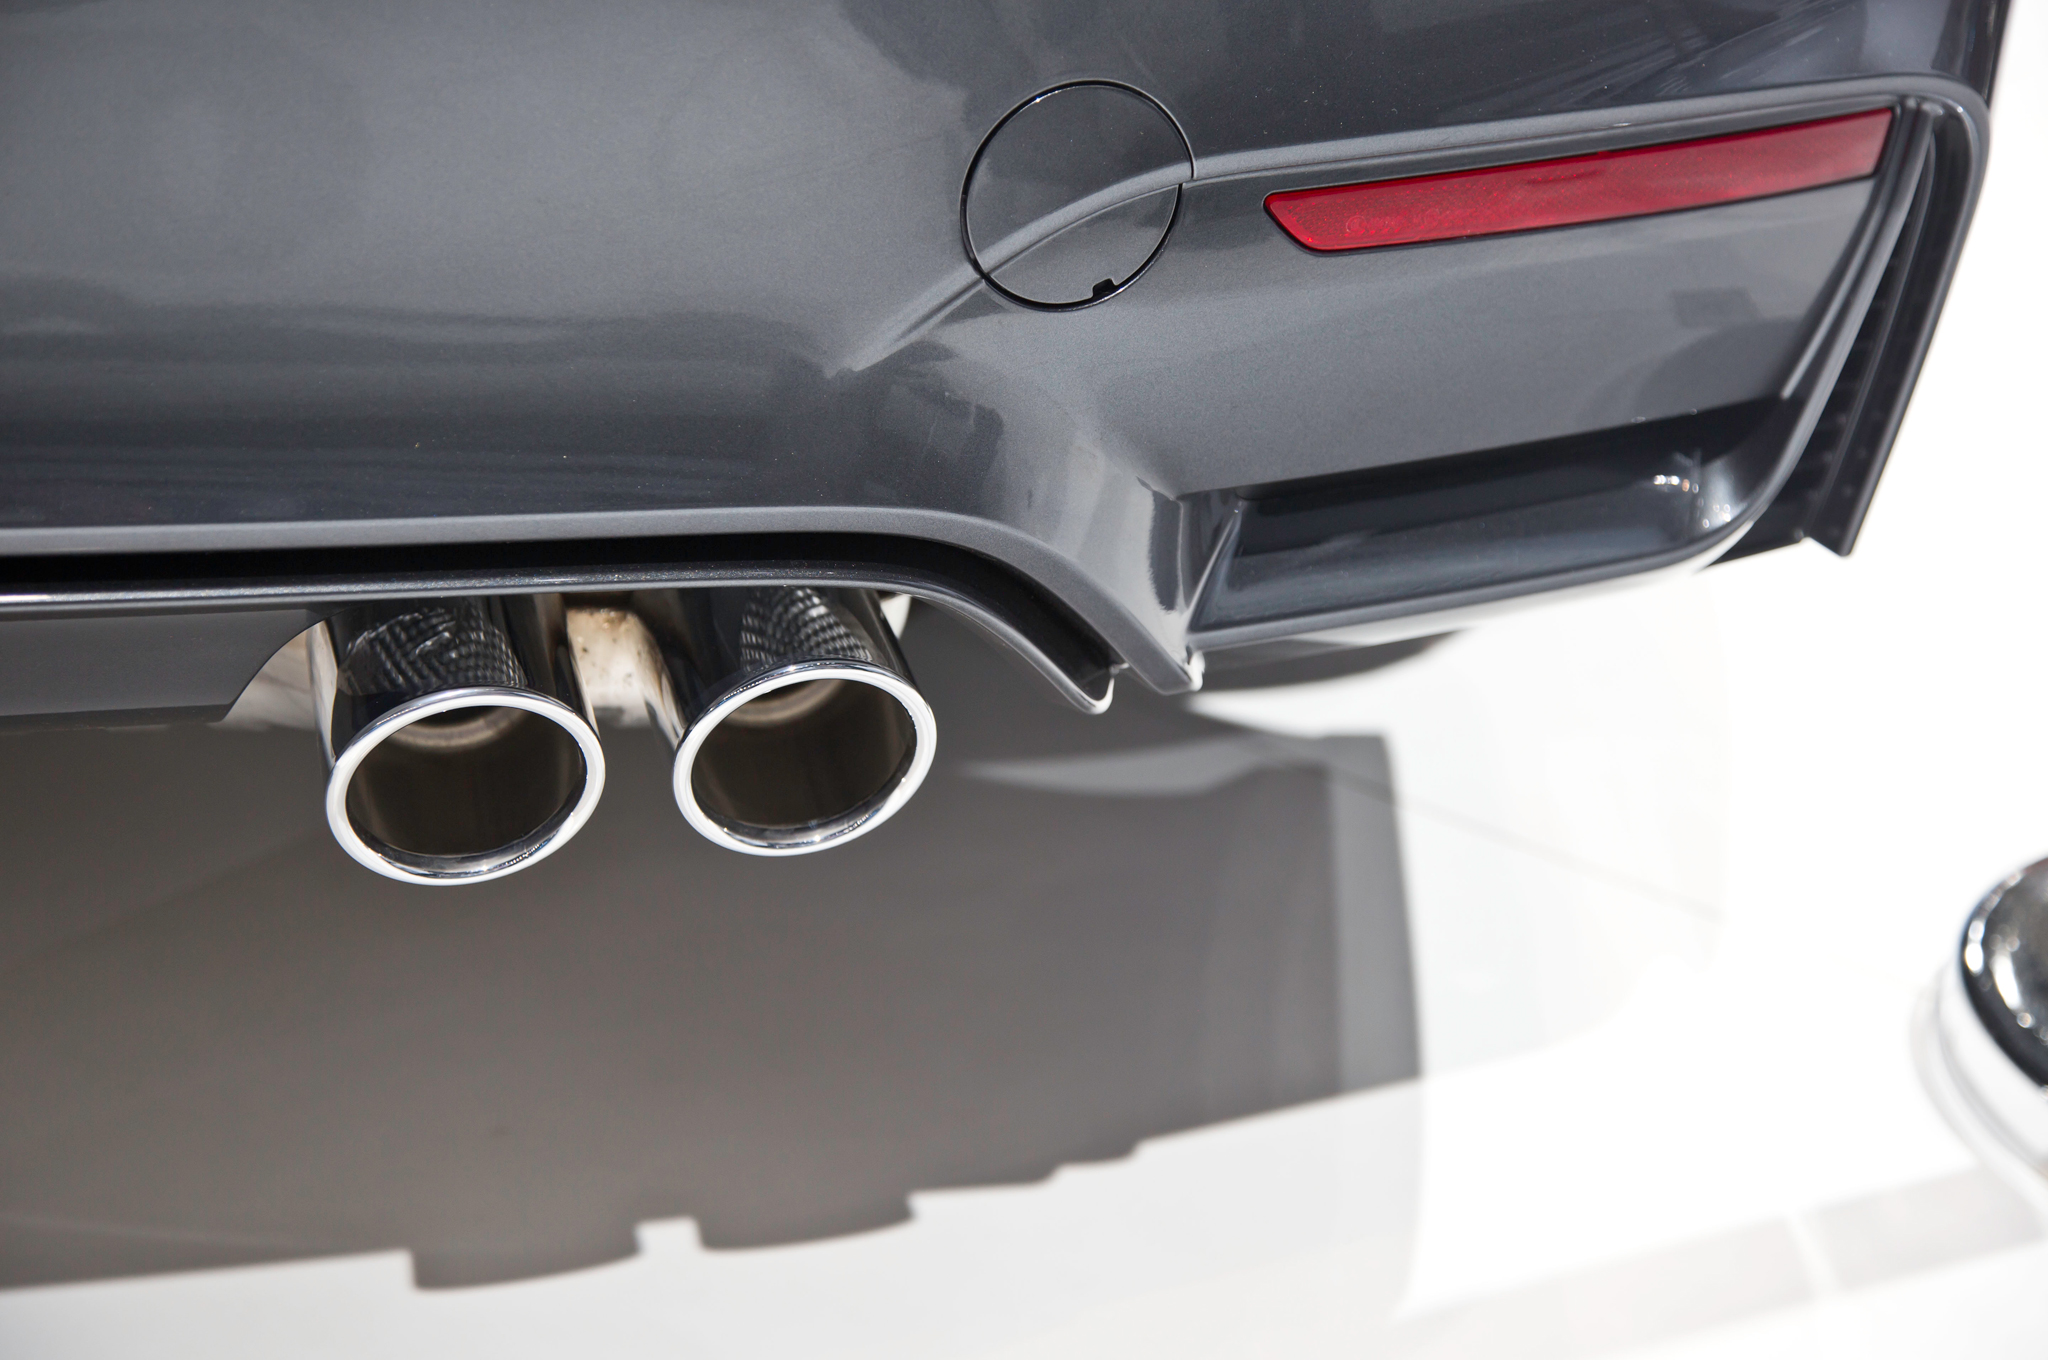 2015 Bmw M4 Convertible Tailpipes Details (Photo 48 of 50)